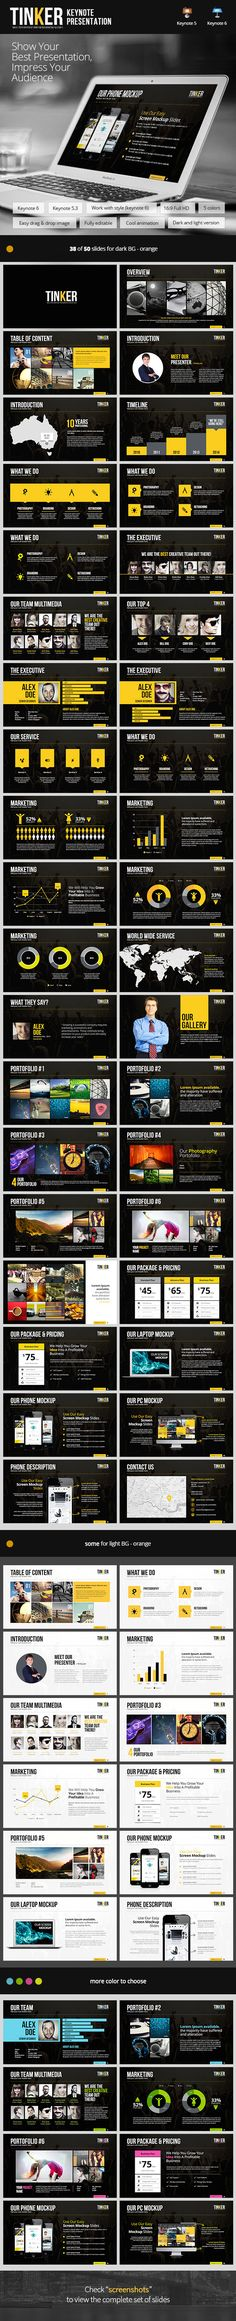 Kutuk 2 - Powerpoint Presentation Template PowerPoint Templates - powerpoint presentations template